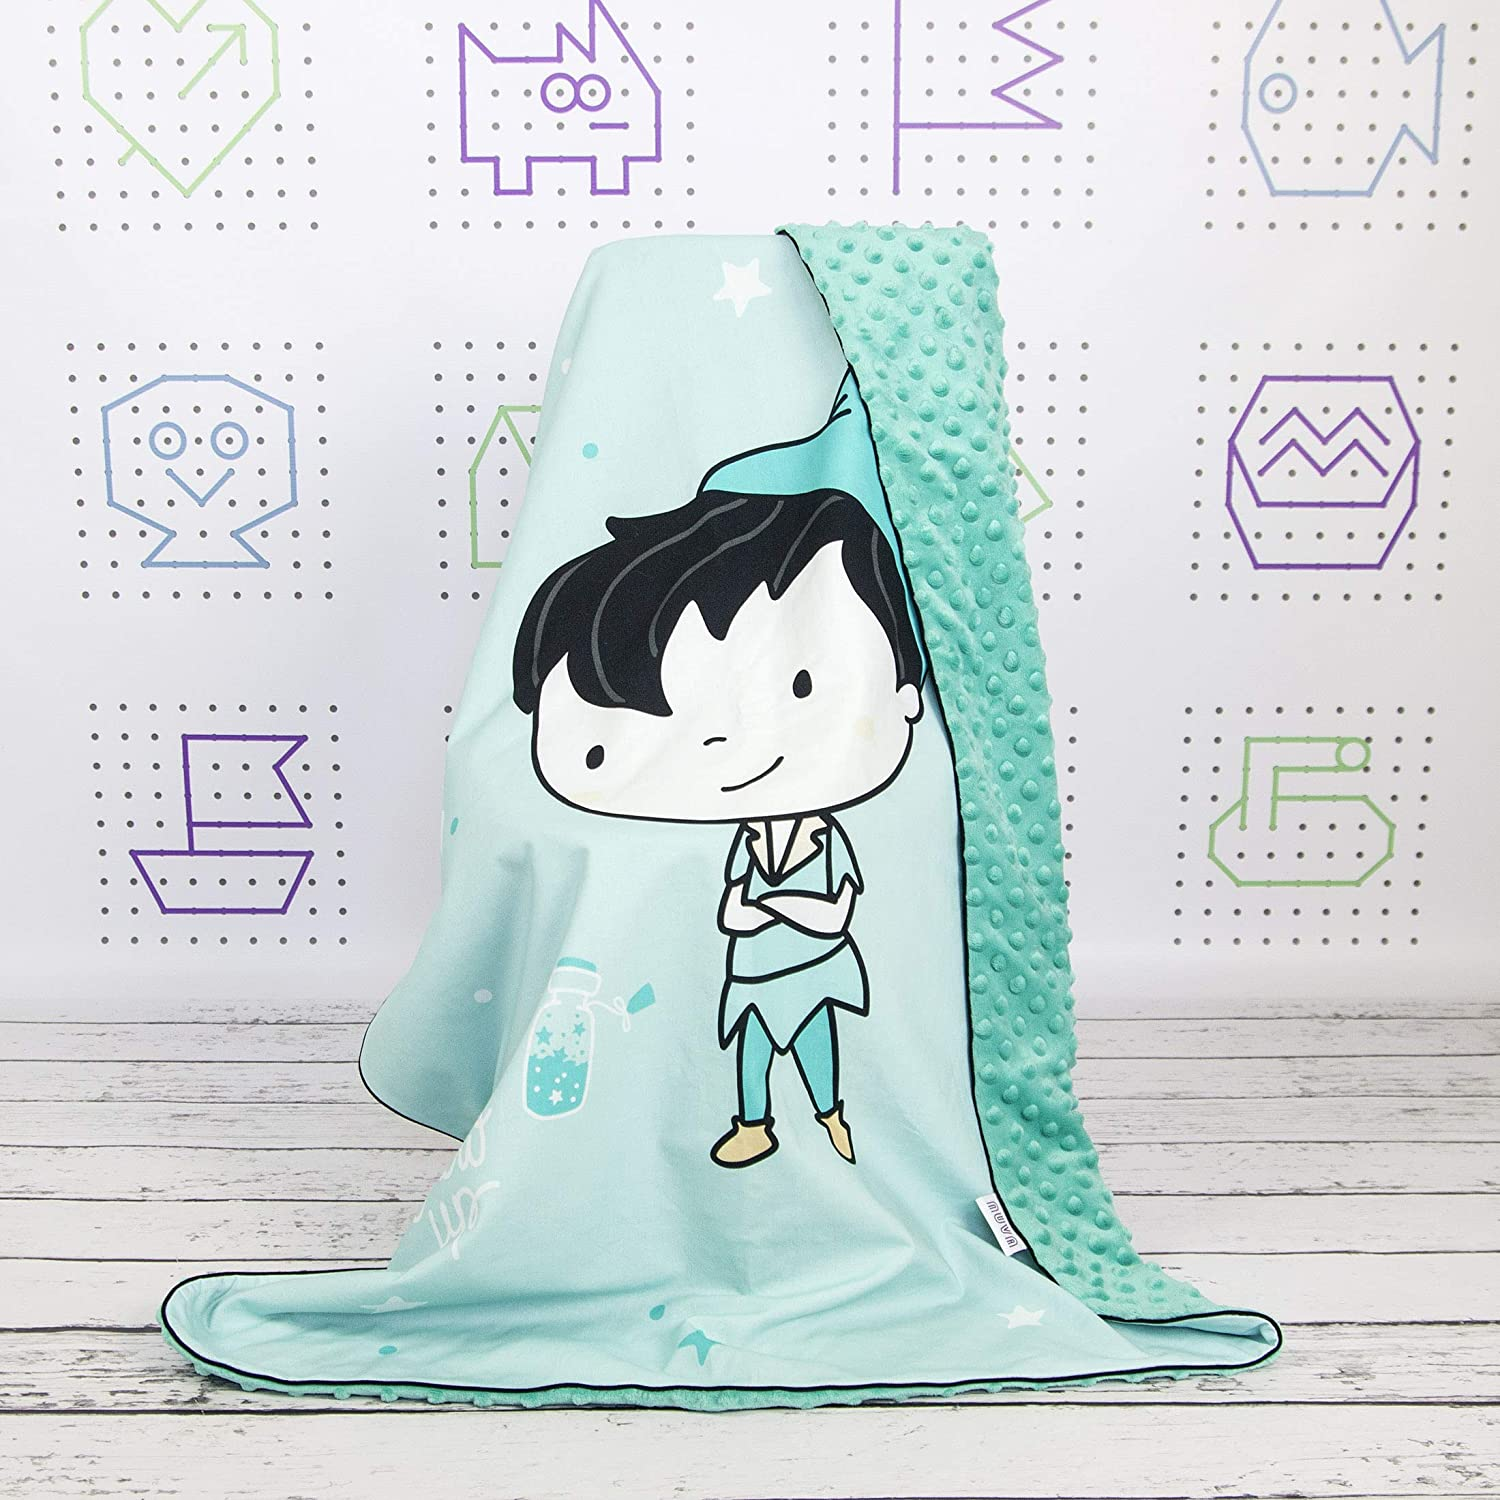 Peter Pan Baby Crib Bedding Minky Blanket With Panel Print And Flat Infant Pillow Nuva Amazon Co Uk Handmade